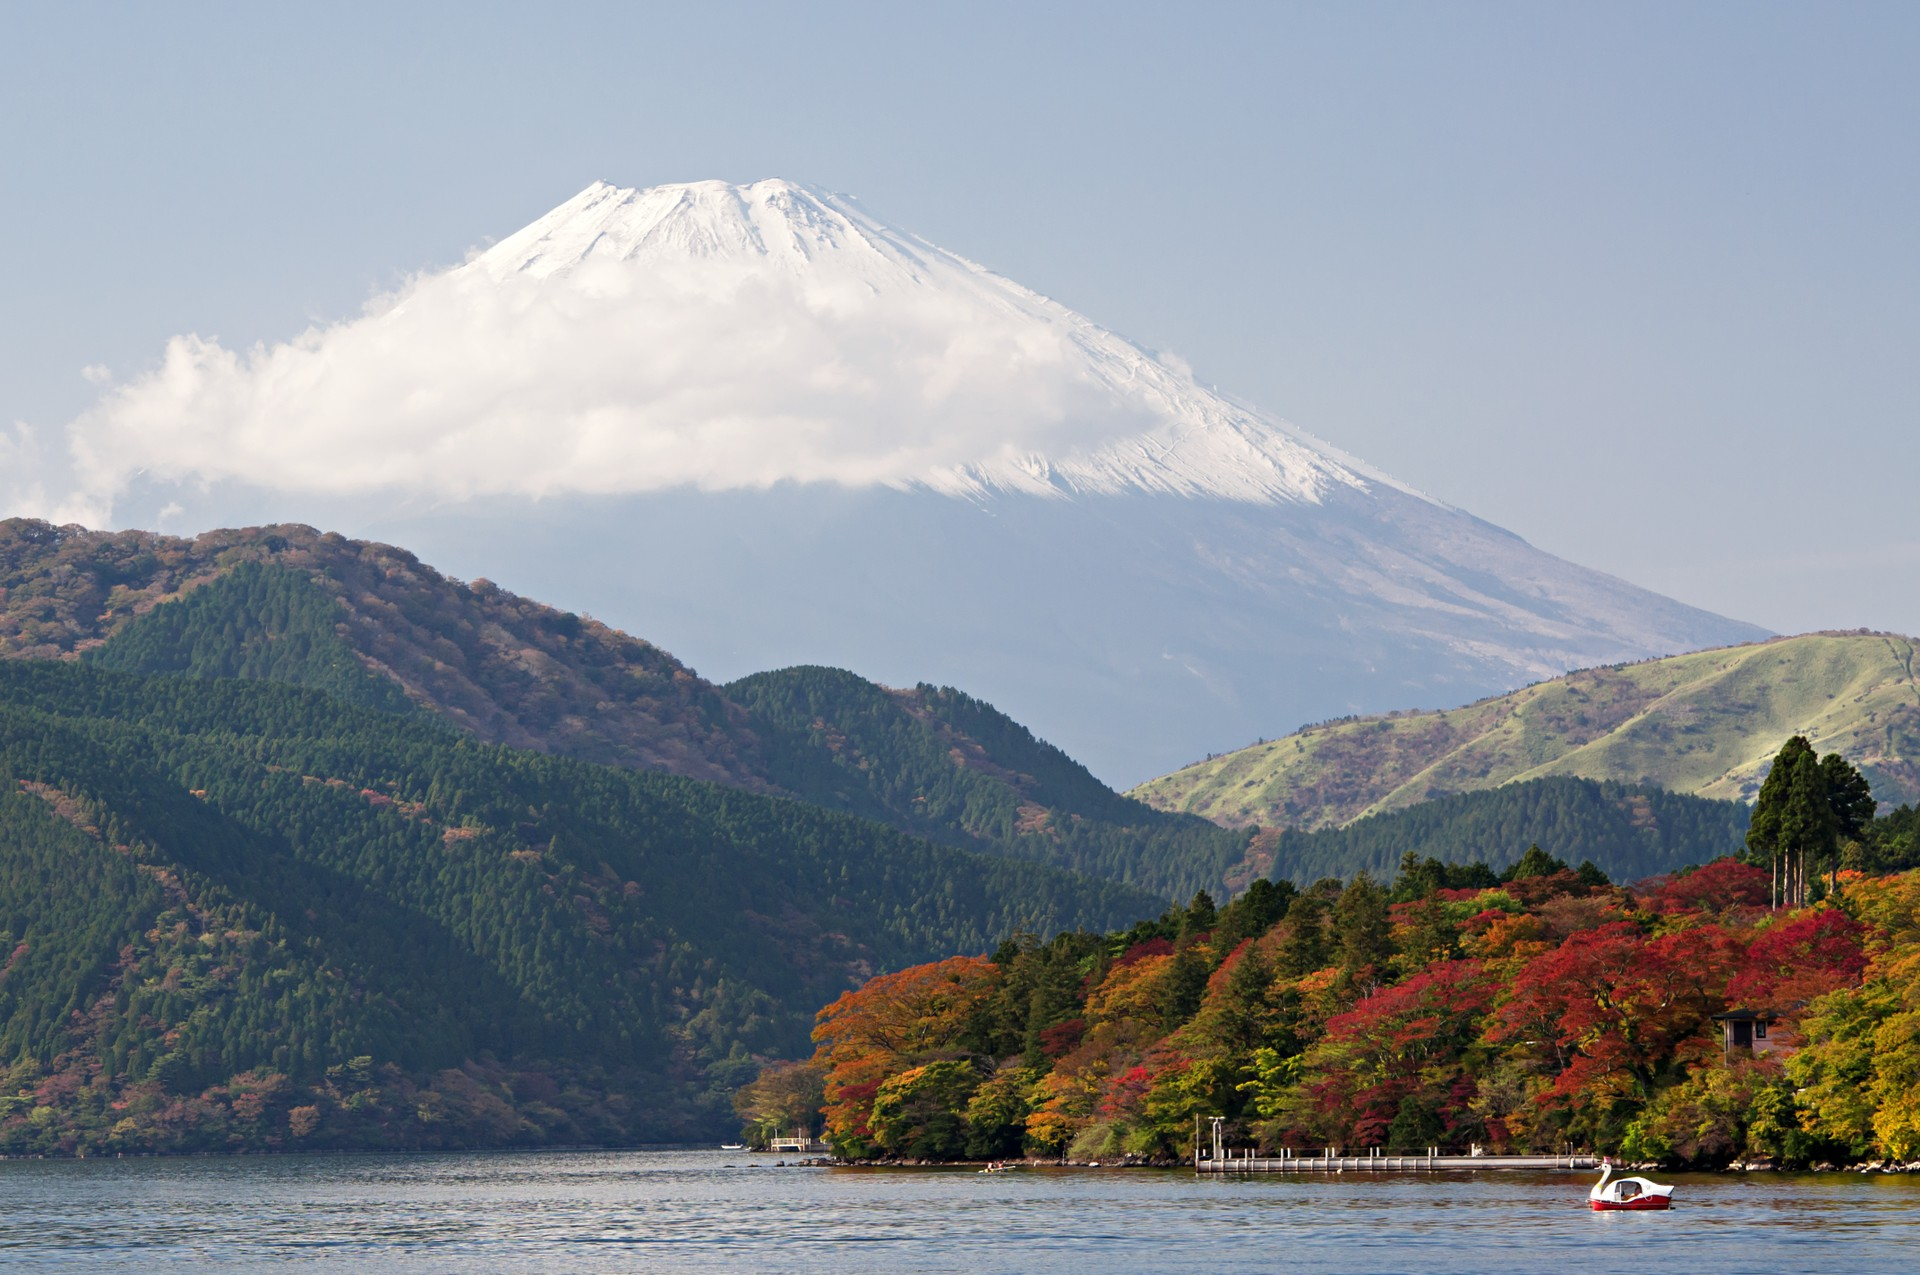 View of Mount Fuji over lake